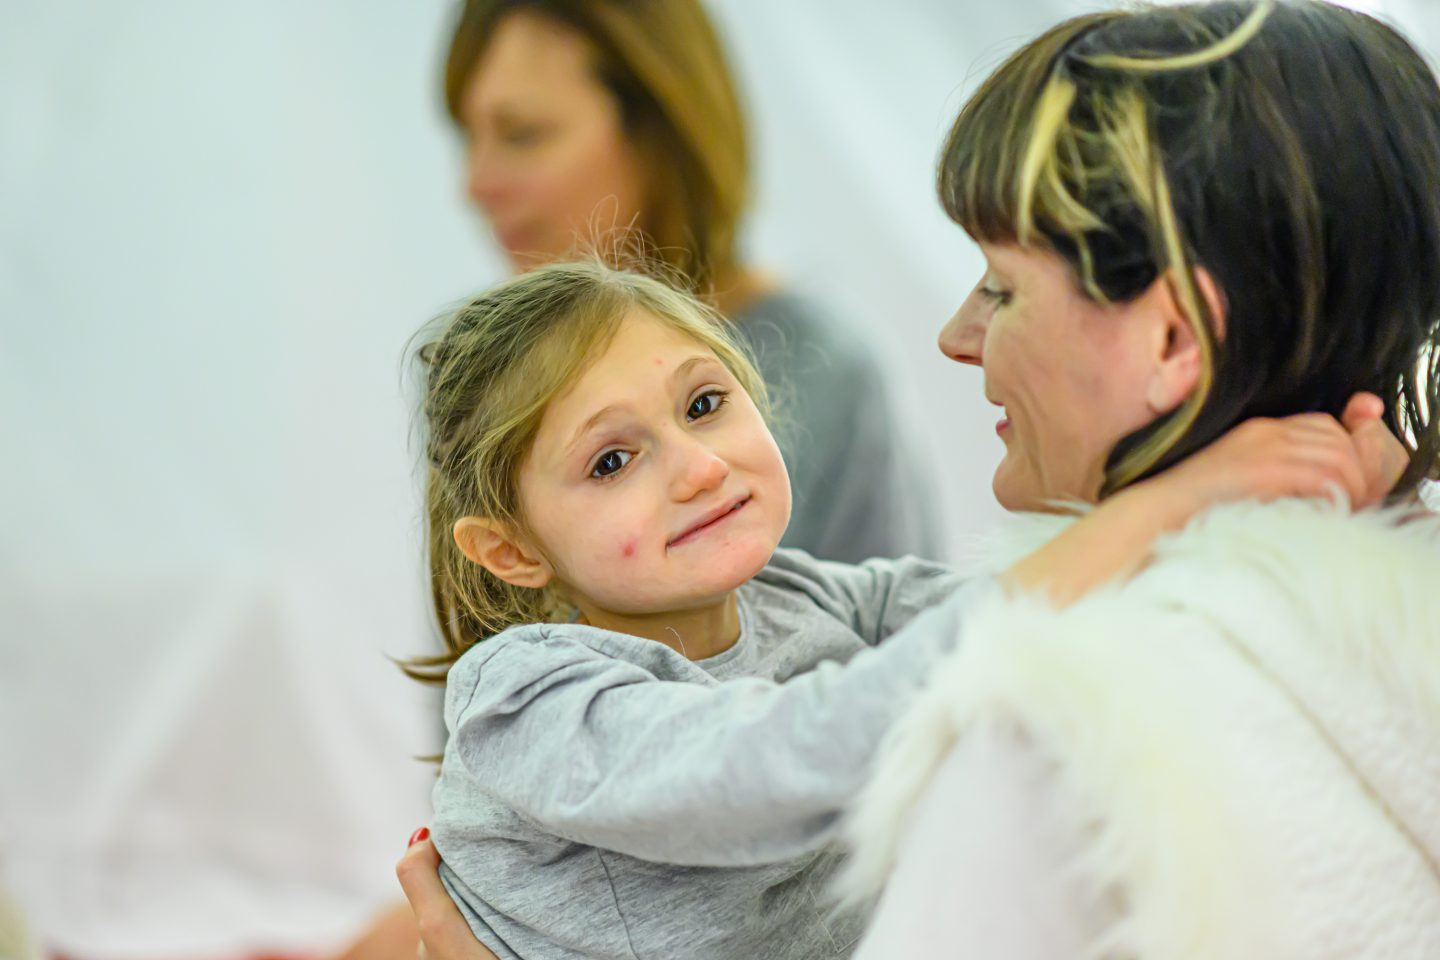 Little Tiny Xmas - a young female audience member looks at the camera with her arms around the performer who is dressed in white